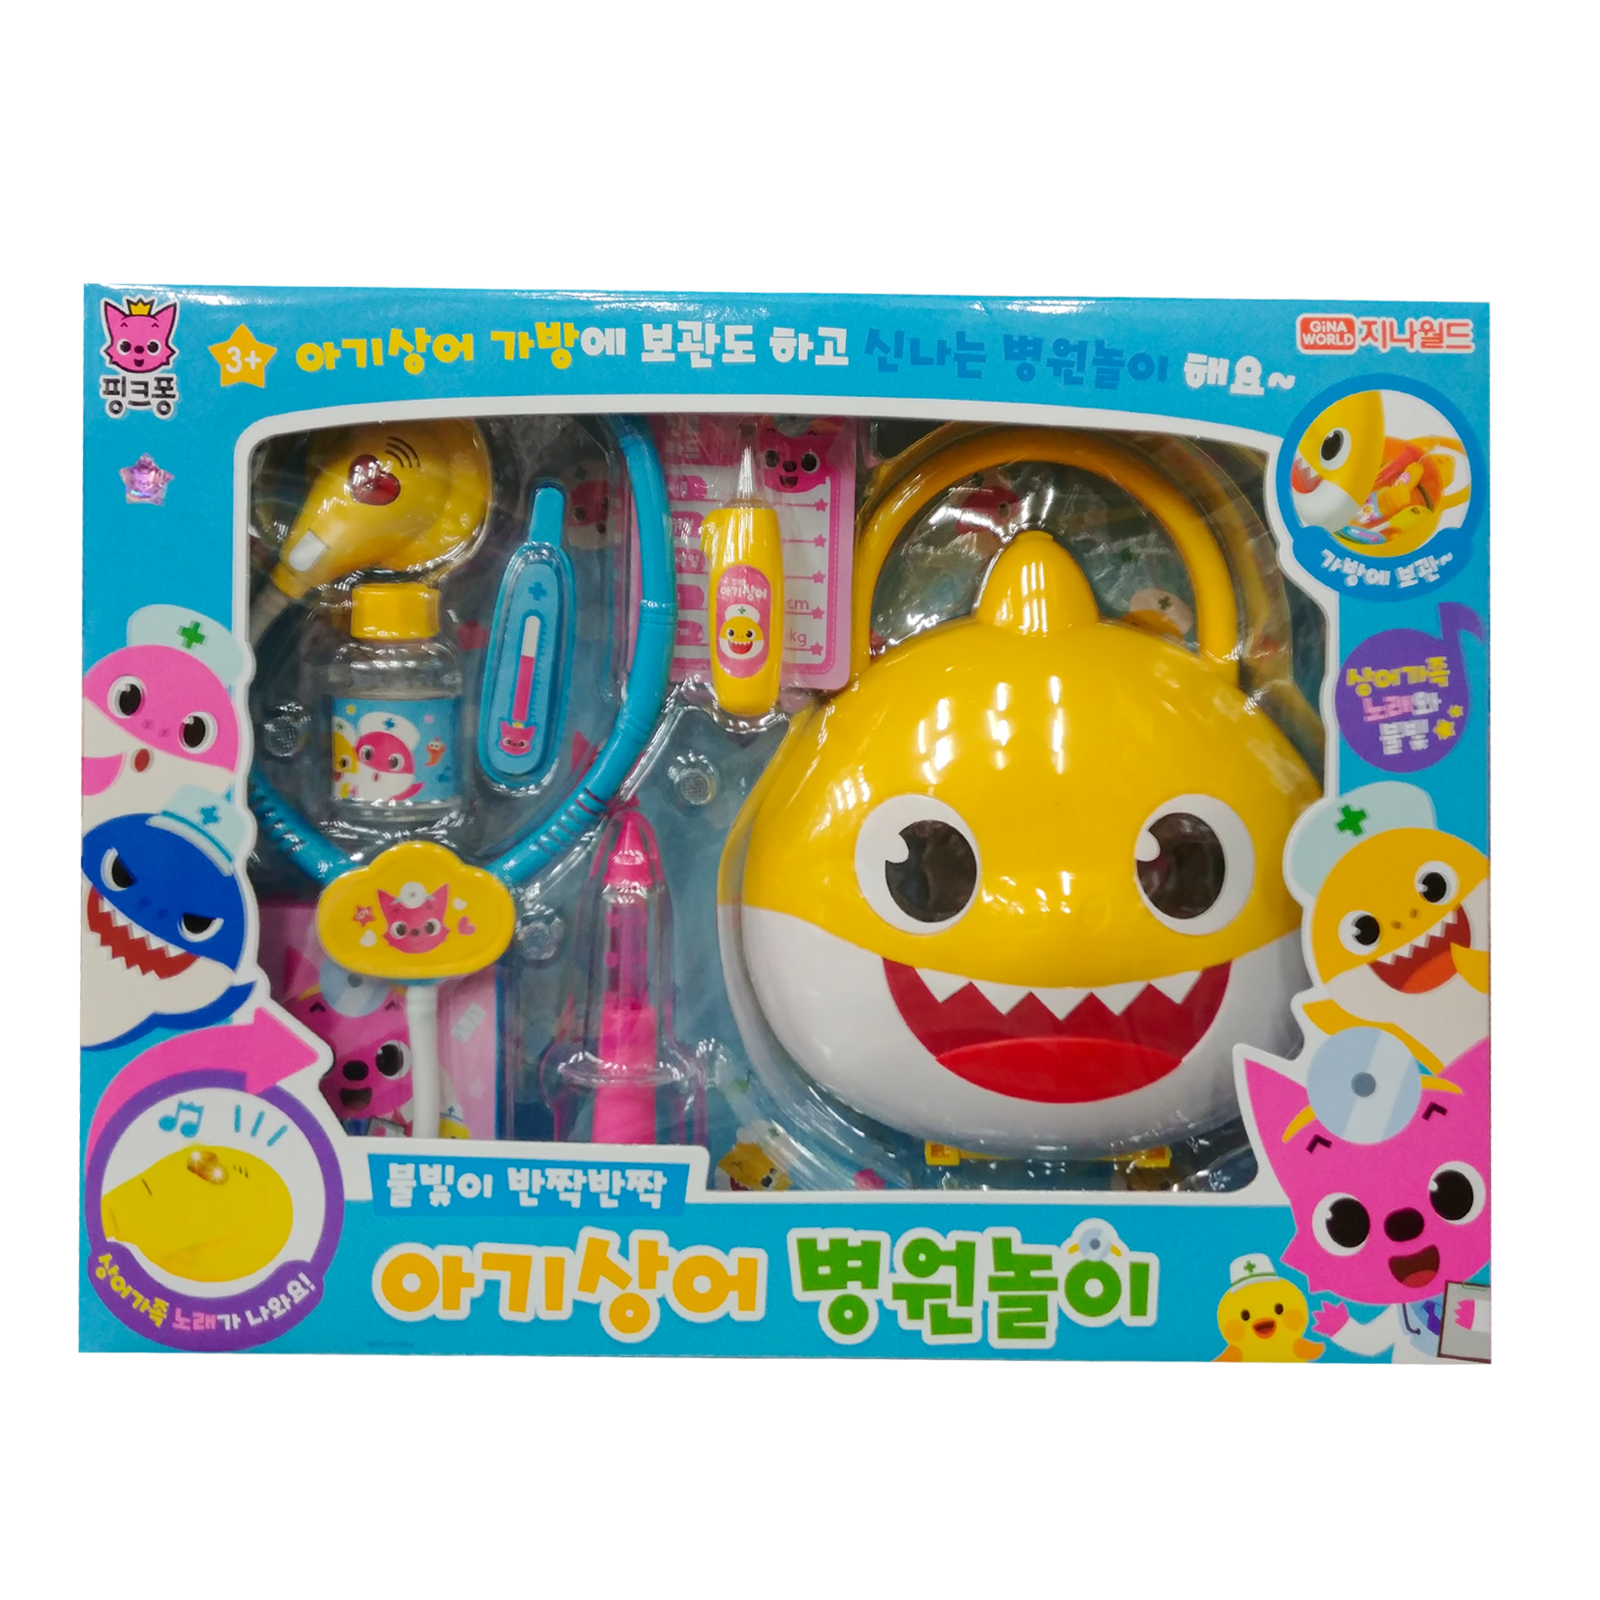 Pinkfong Christmas Shark Family Sticker Play Toy For Baby/&Kid 60 Stickers